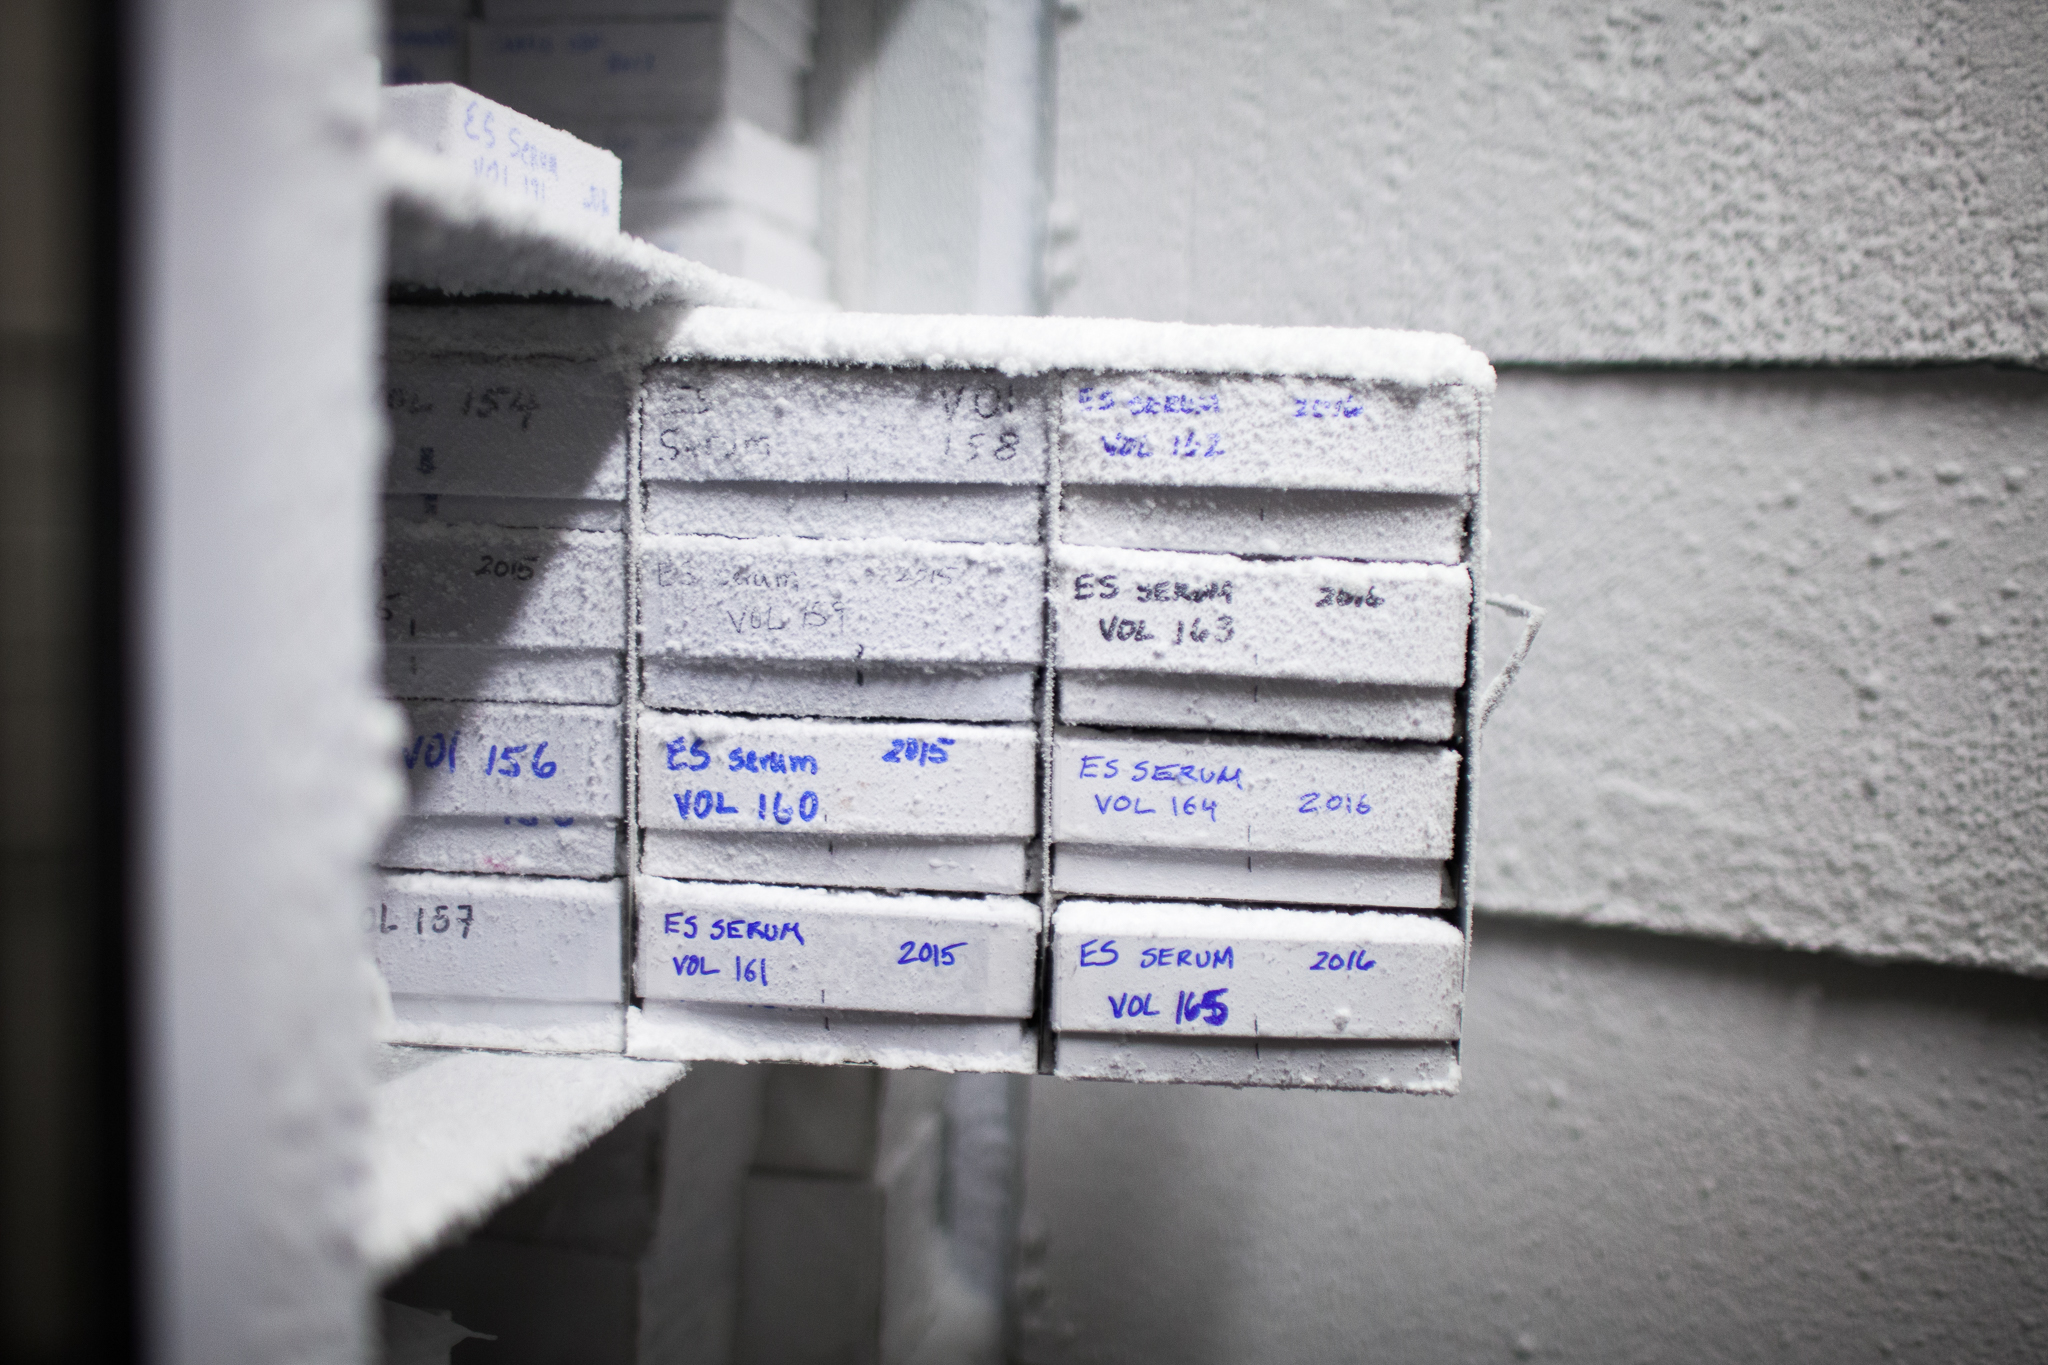 Fastidiously labeled tissue samples line the shelves of several freezers stored on-site at The Marine Mammal Center.